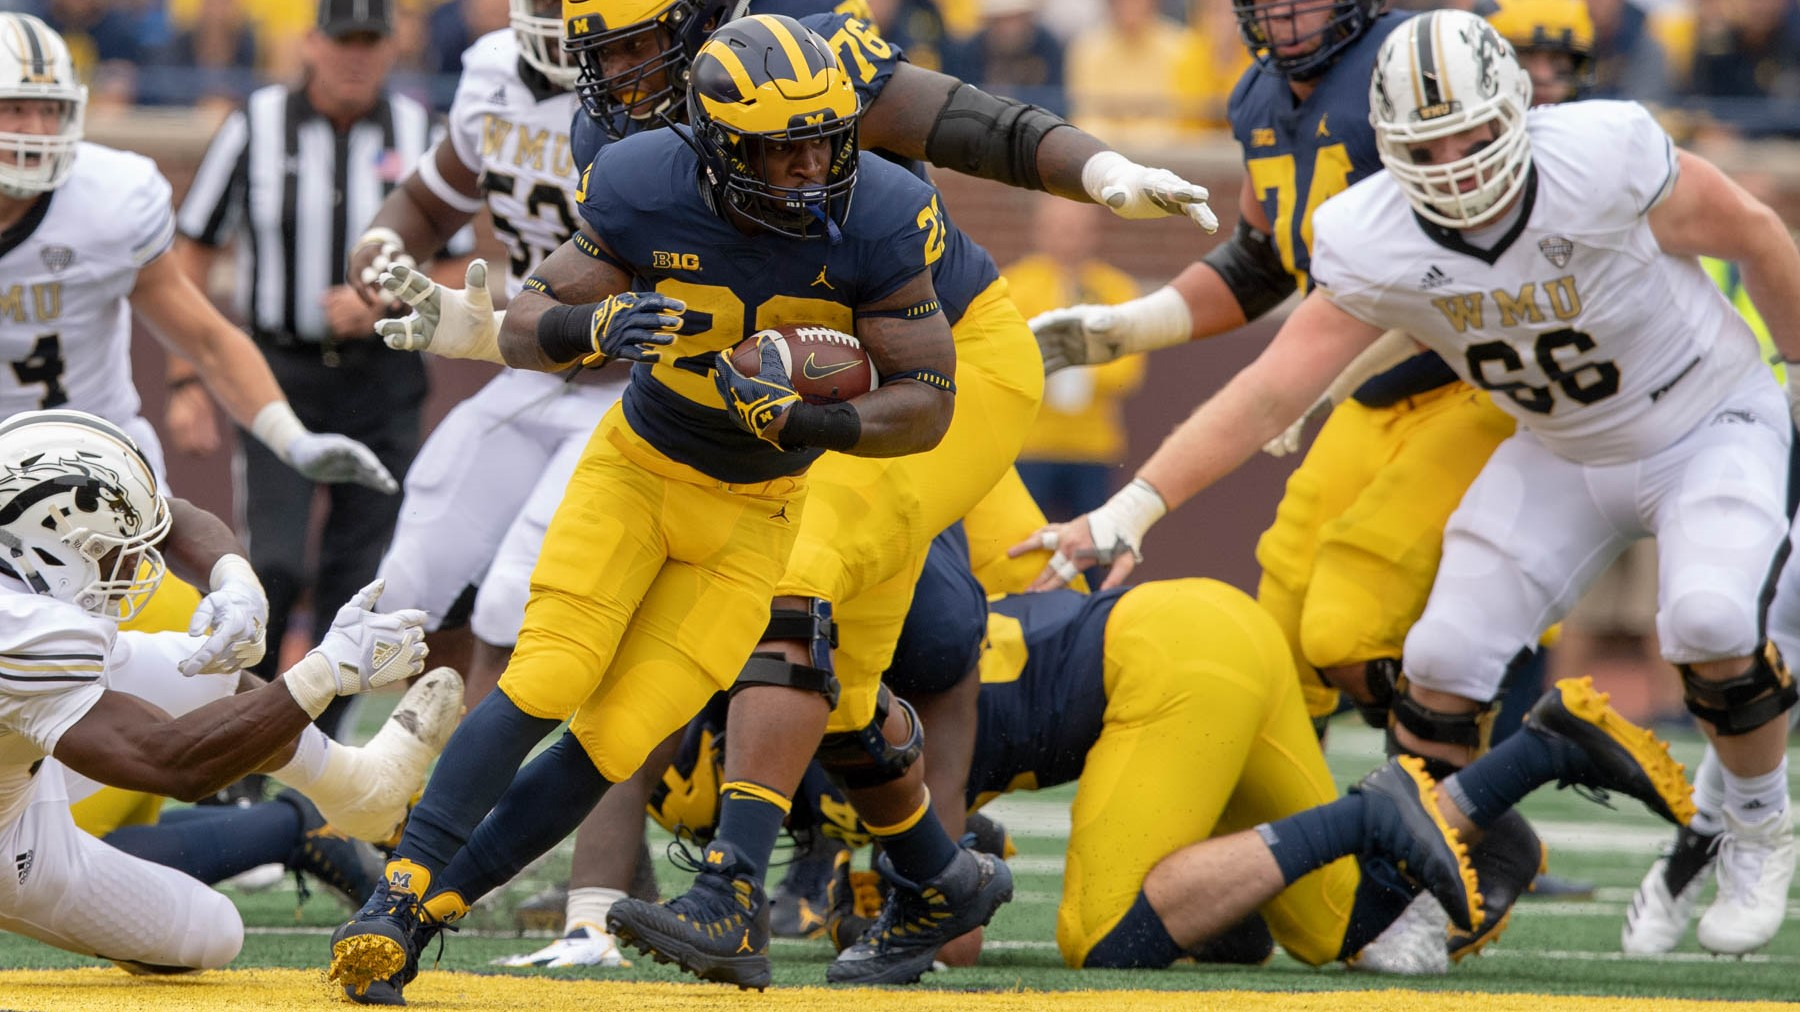 outlet store a8a91 09725 Karan Higdon - Football - University of Michigan Athletics